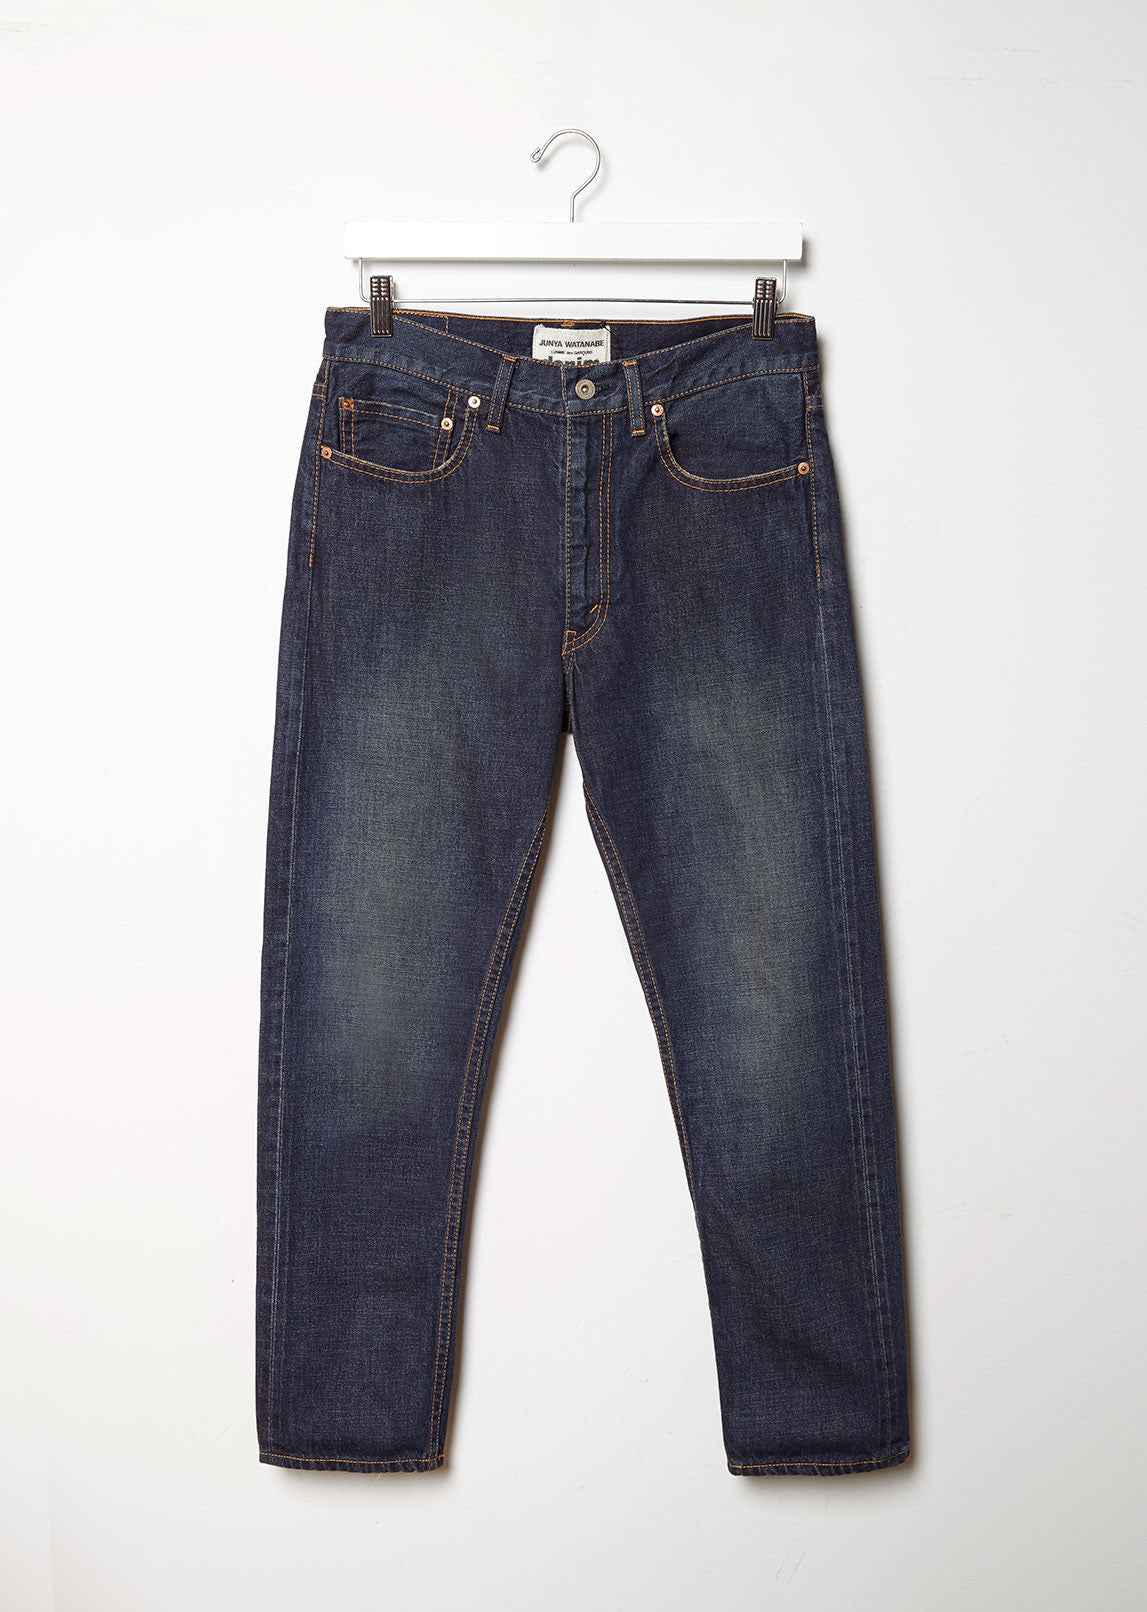 Selvedge Vintage Treated Relaxed Jeans